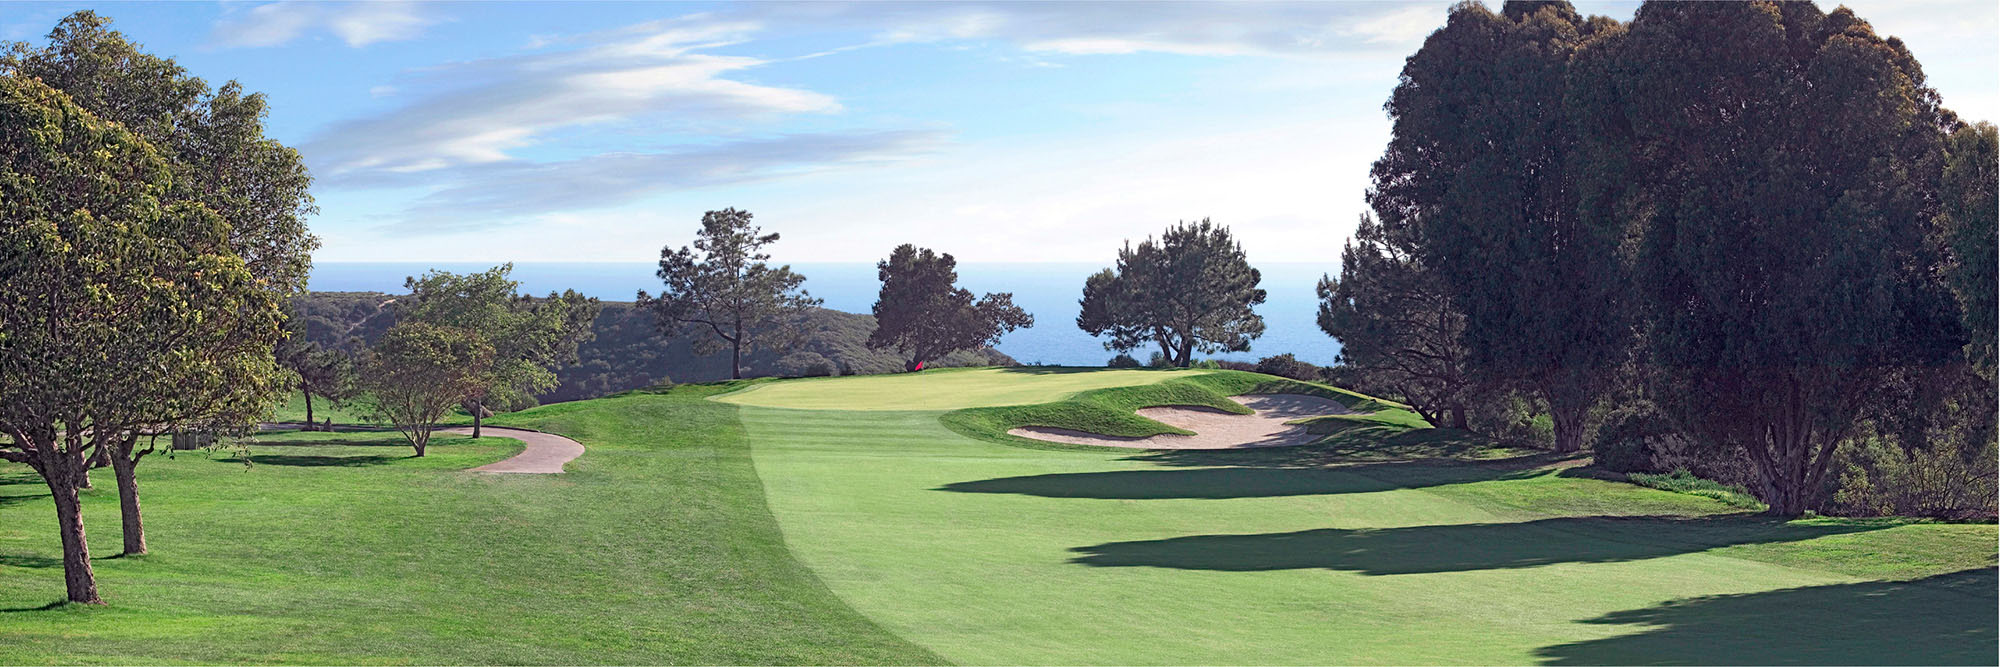 Golf Course Image - Torrey Pines South No. 7